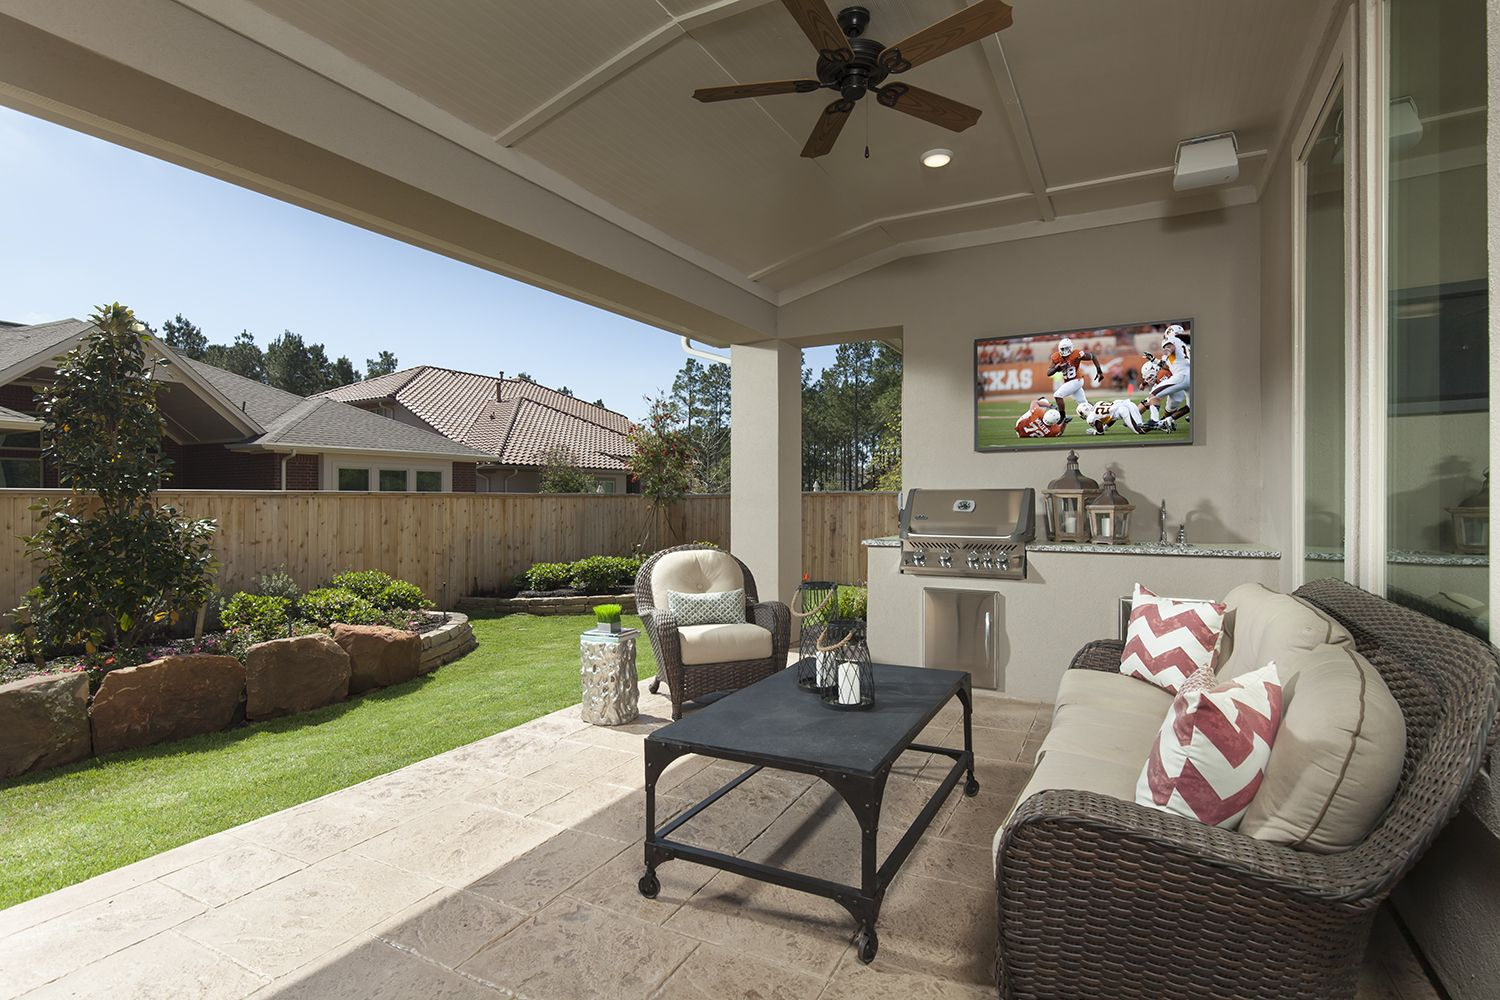 Coventry Homes In Liberty Branch The Woodlands Tx Coventry Homes New Homes For Sale Outdoor Furniture Sets